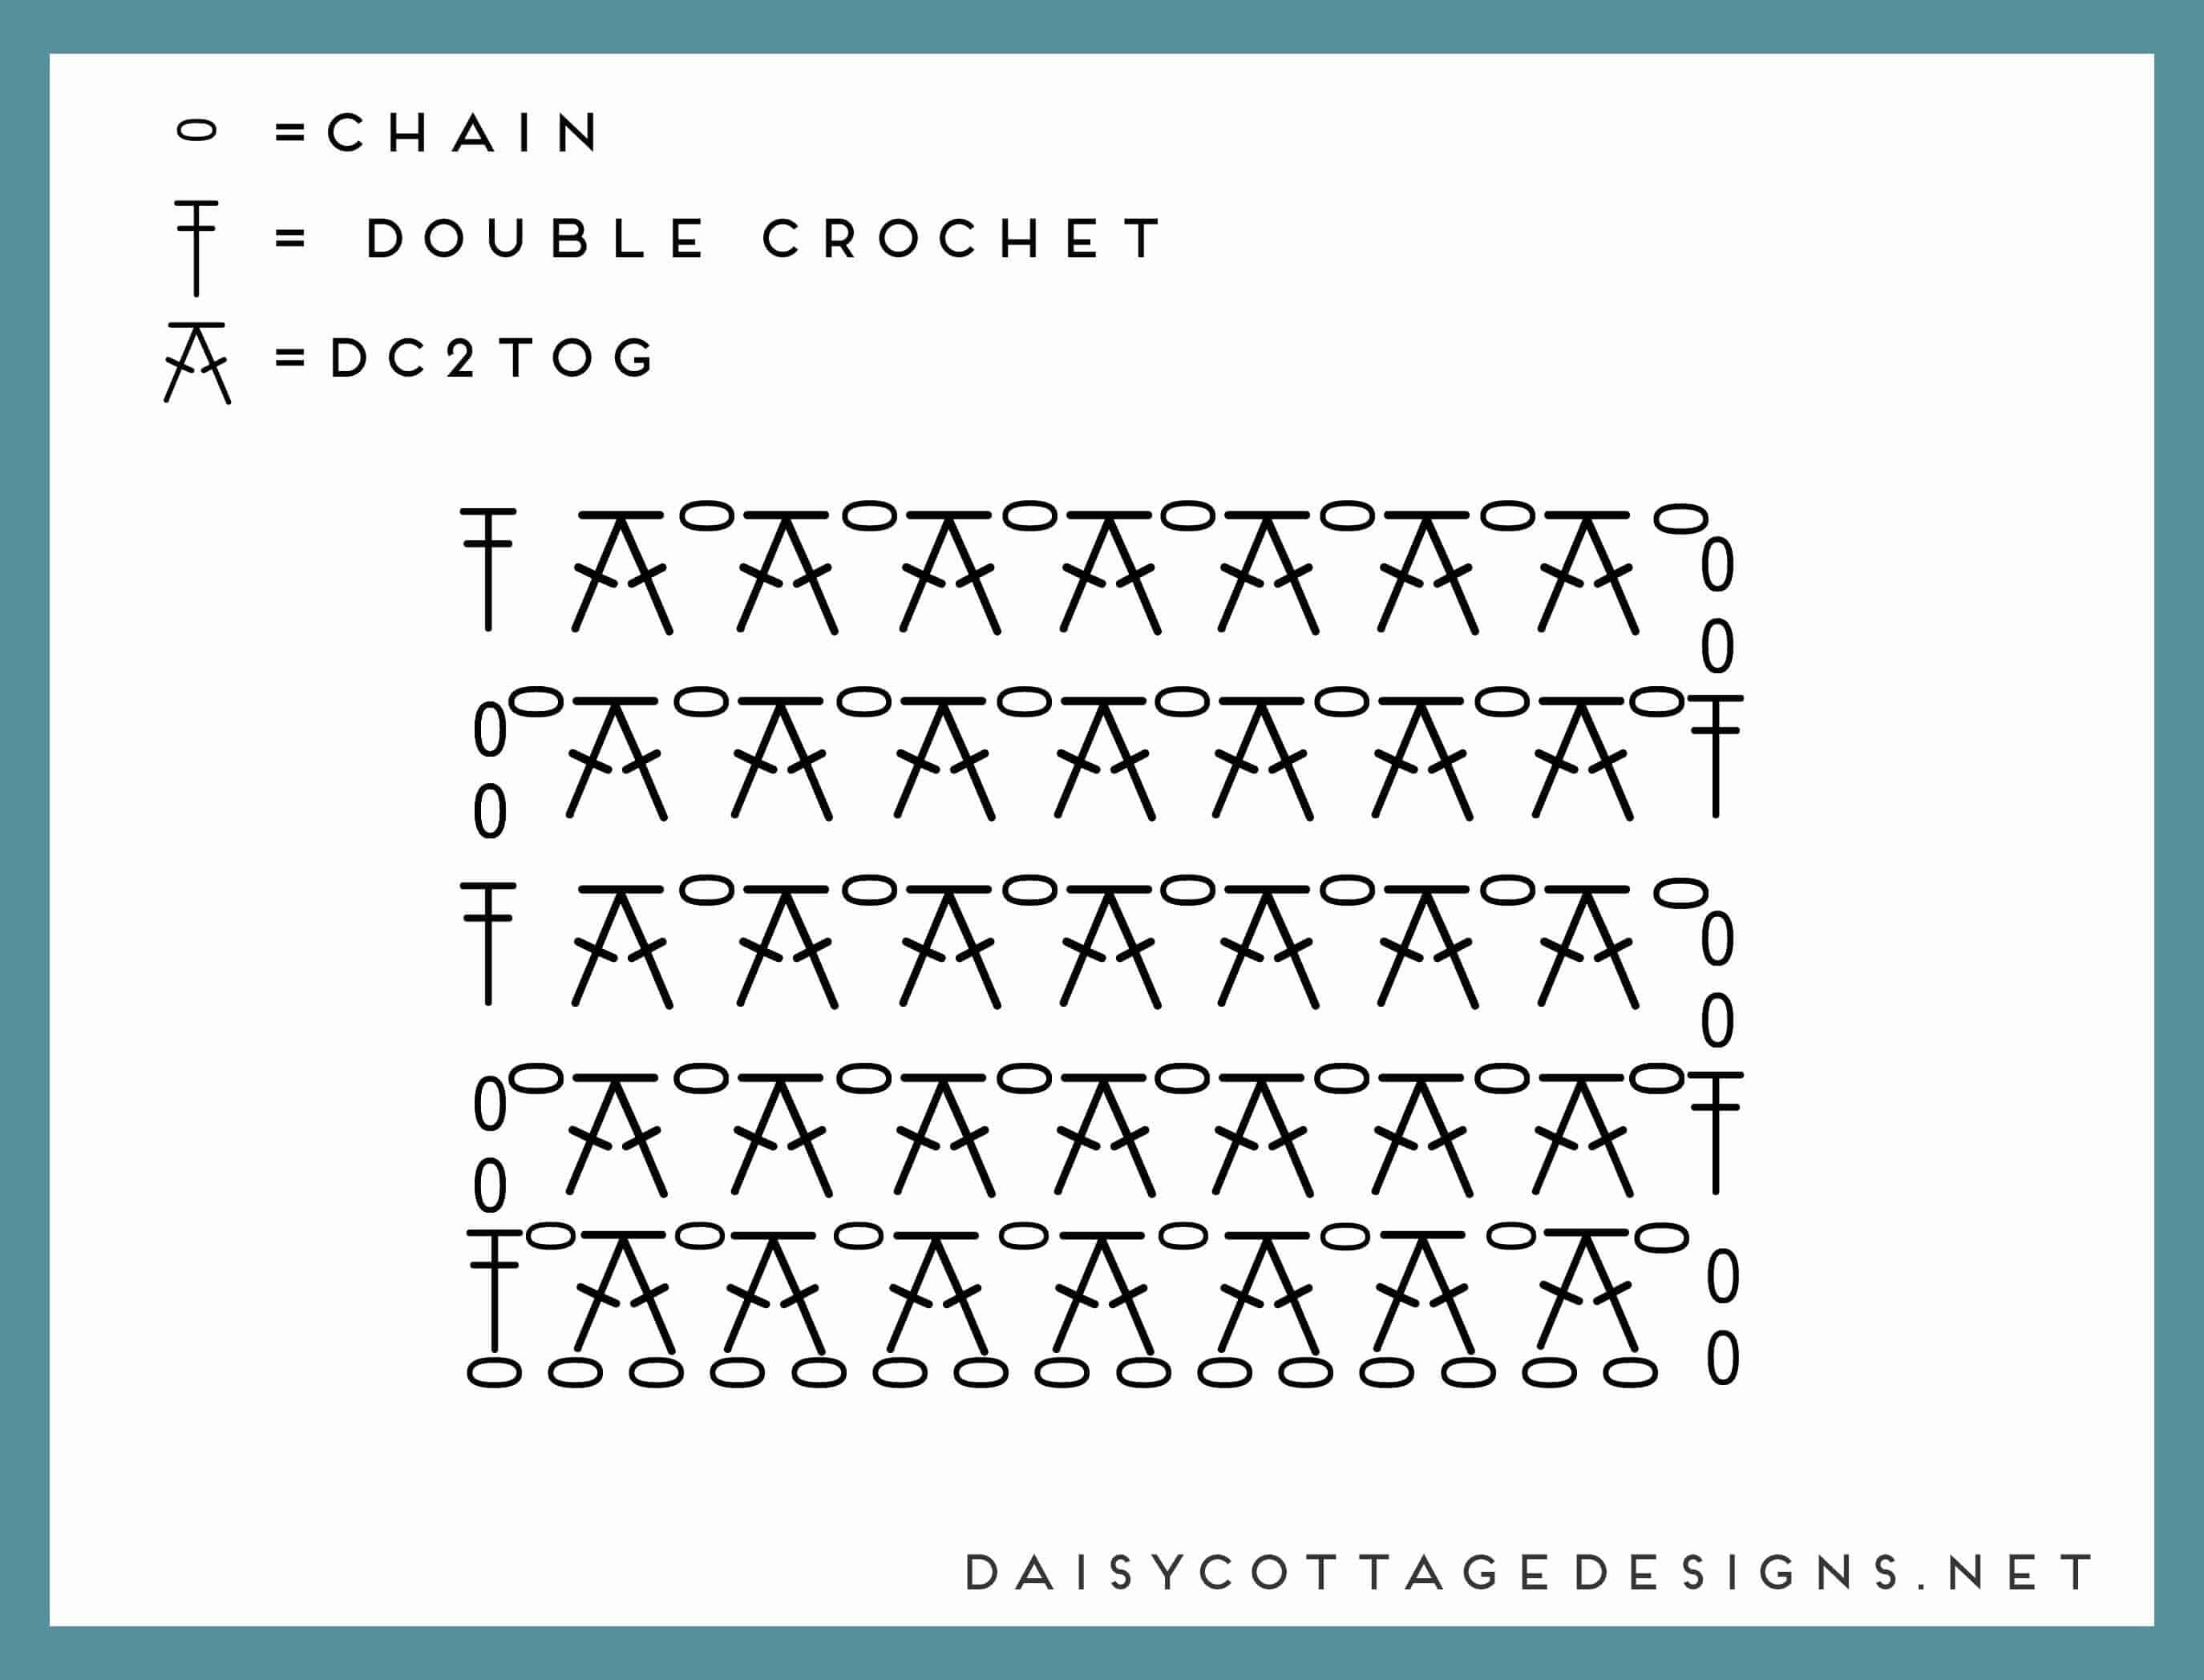 Color Block Blanket Crochet Pattern - Daisy Cottage Designs